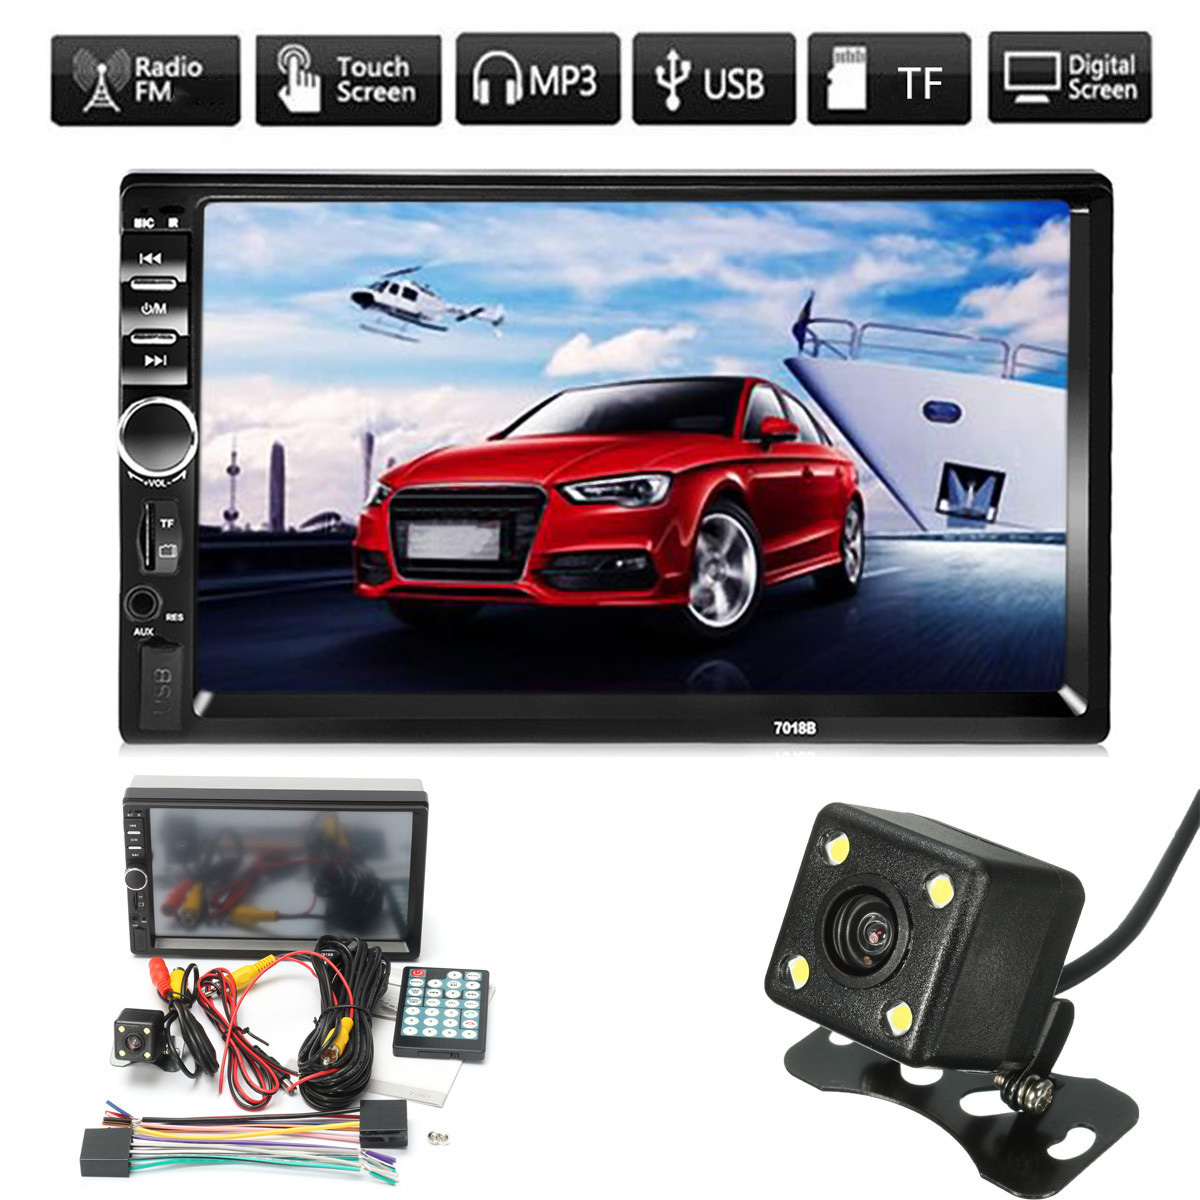 7 HD Touch Screen 2 Din Car Radio Player Auto Audio Stereo Digital Display USB Bluetooth MP5 FM AUX with Rear View Camera 2 din 7 car stereo radio bluetooth hd touch screen fm mp5 mp3 usb aux with rear view camera car bluetooth aux radio player